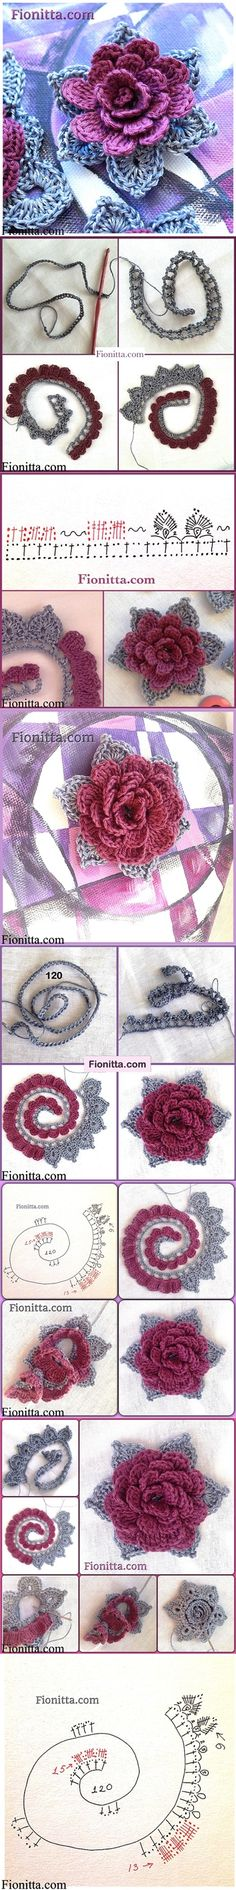 DIY Crochet Rose In 3 Ways - Betty - DIY Crochet Rose In 3 Ways These Crochet Flowers are pretty as a picture and perfect for adding to hats, brooches, hair clips, bags and so much more! Have you ever had a boring ja - Crochet Diy, Crochet Motifs, Crochet Flower Patterns, Love Crochet, Irish Crochet, Crochet Designs, Crochet Crafts, Crochet Projects, Beautiful Crochet